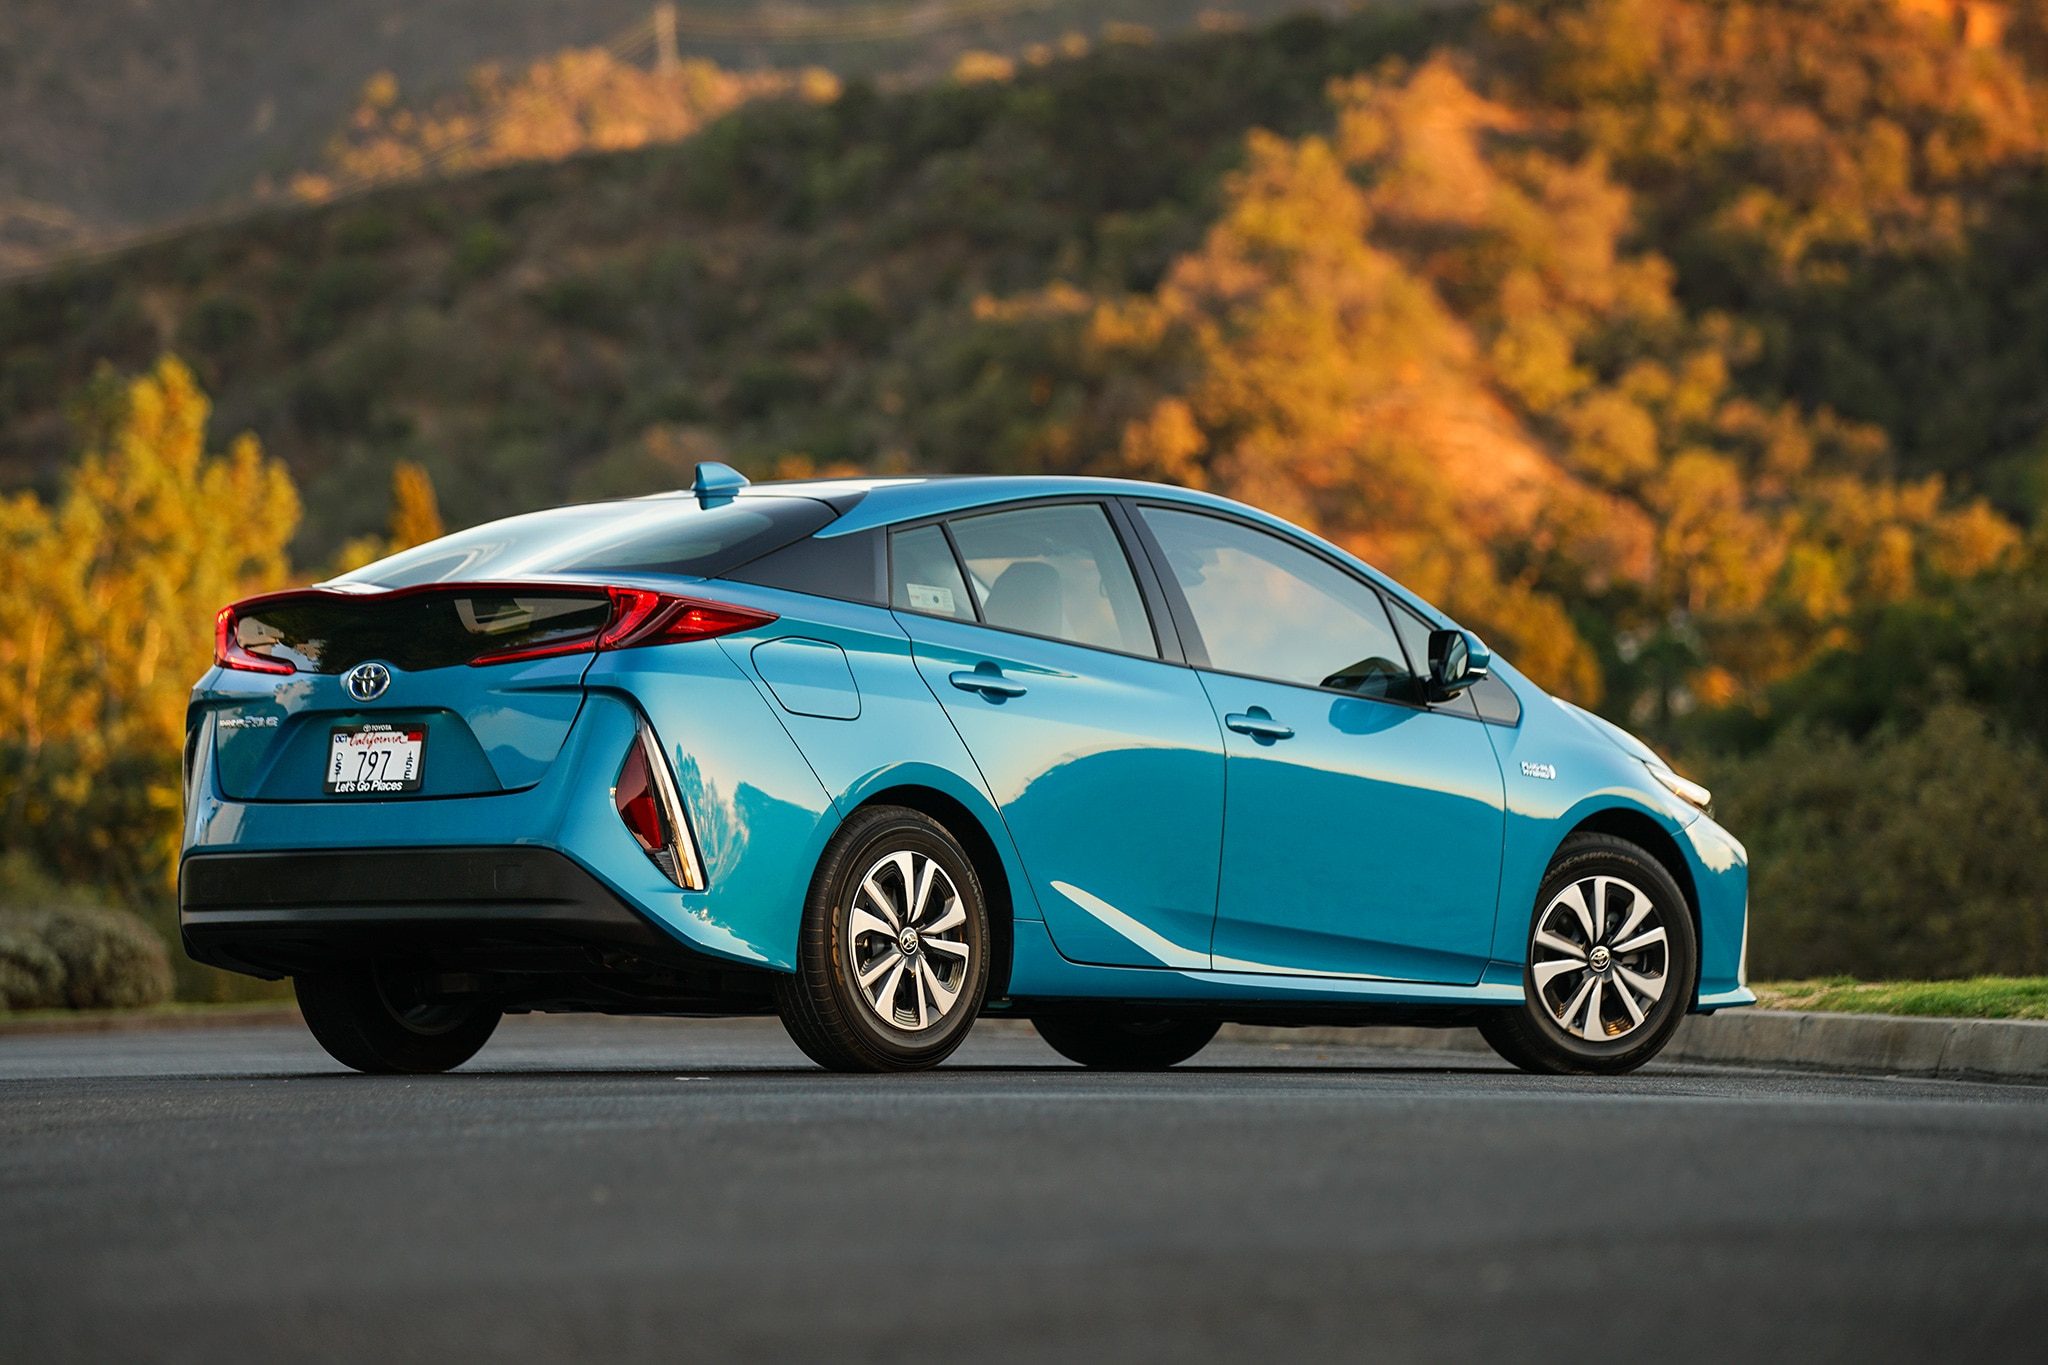 2017 Toyota Prius Prime Second Drive Roadtest Review Automobile Go Back Gt Pix For Snake Skeleton Diagram Show More